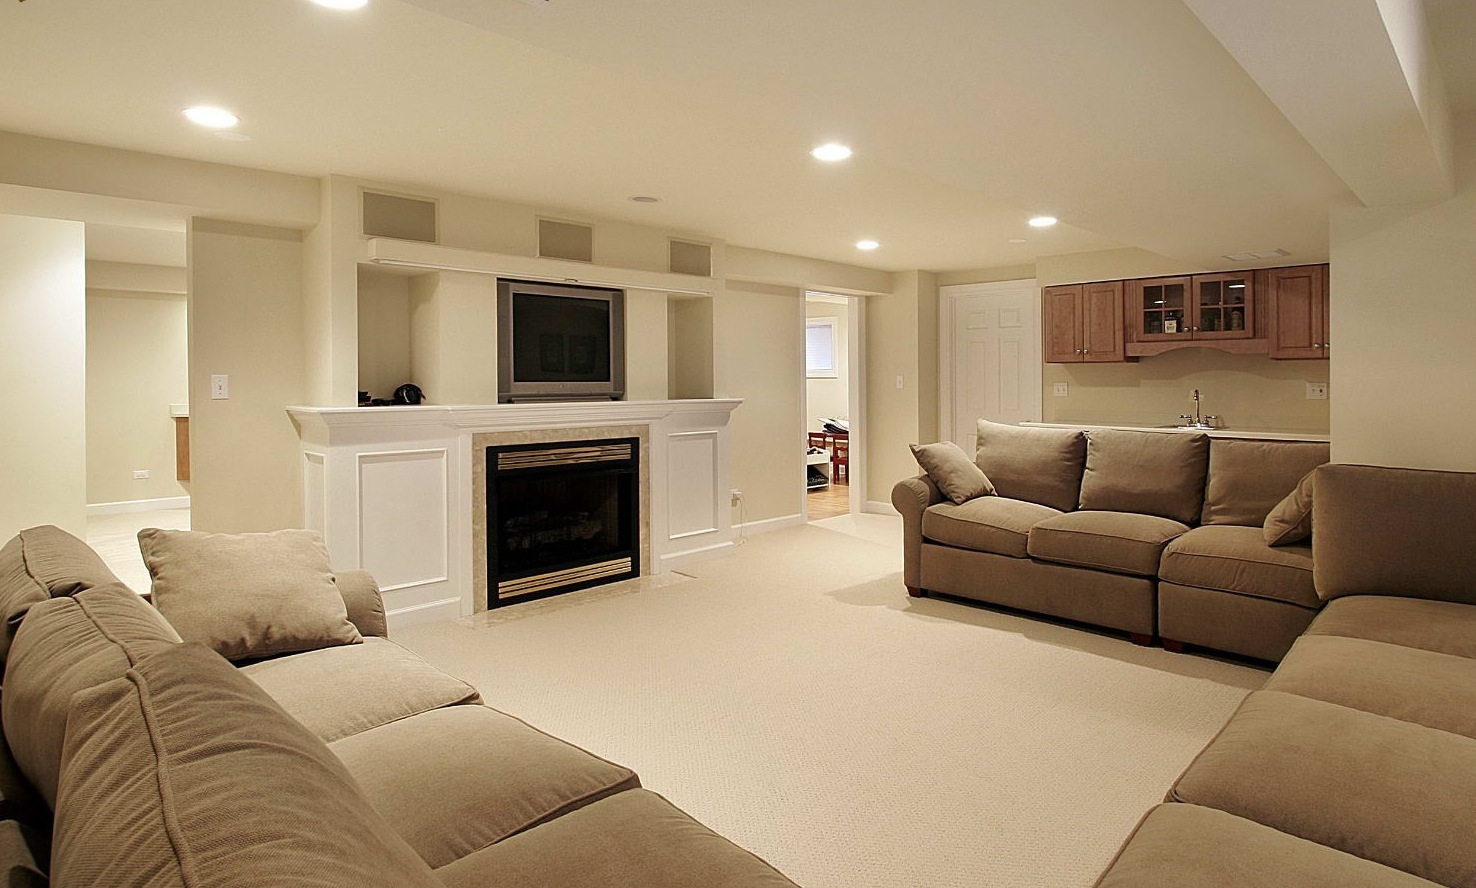 Home Renovation Ideas Living Room New 30 Basement Remodeling Ideas & Inspiration Design Inspiration